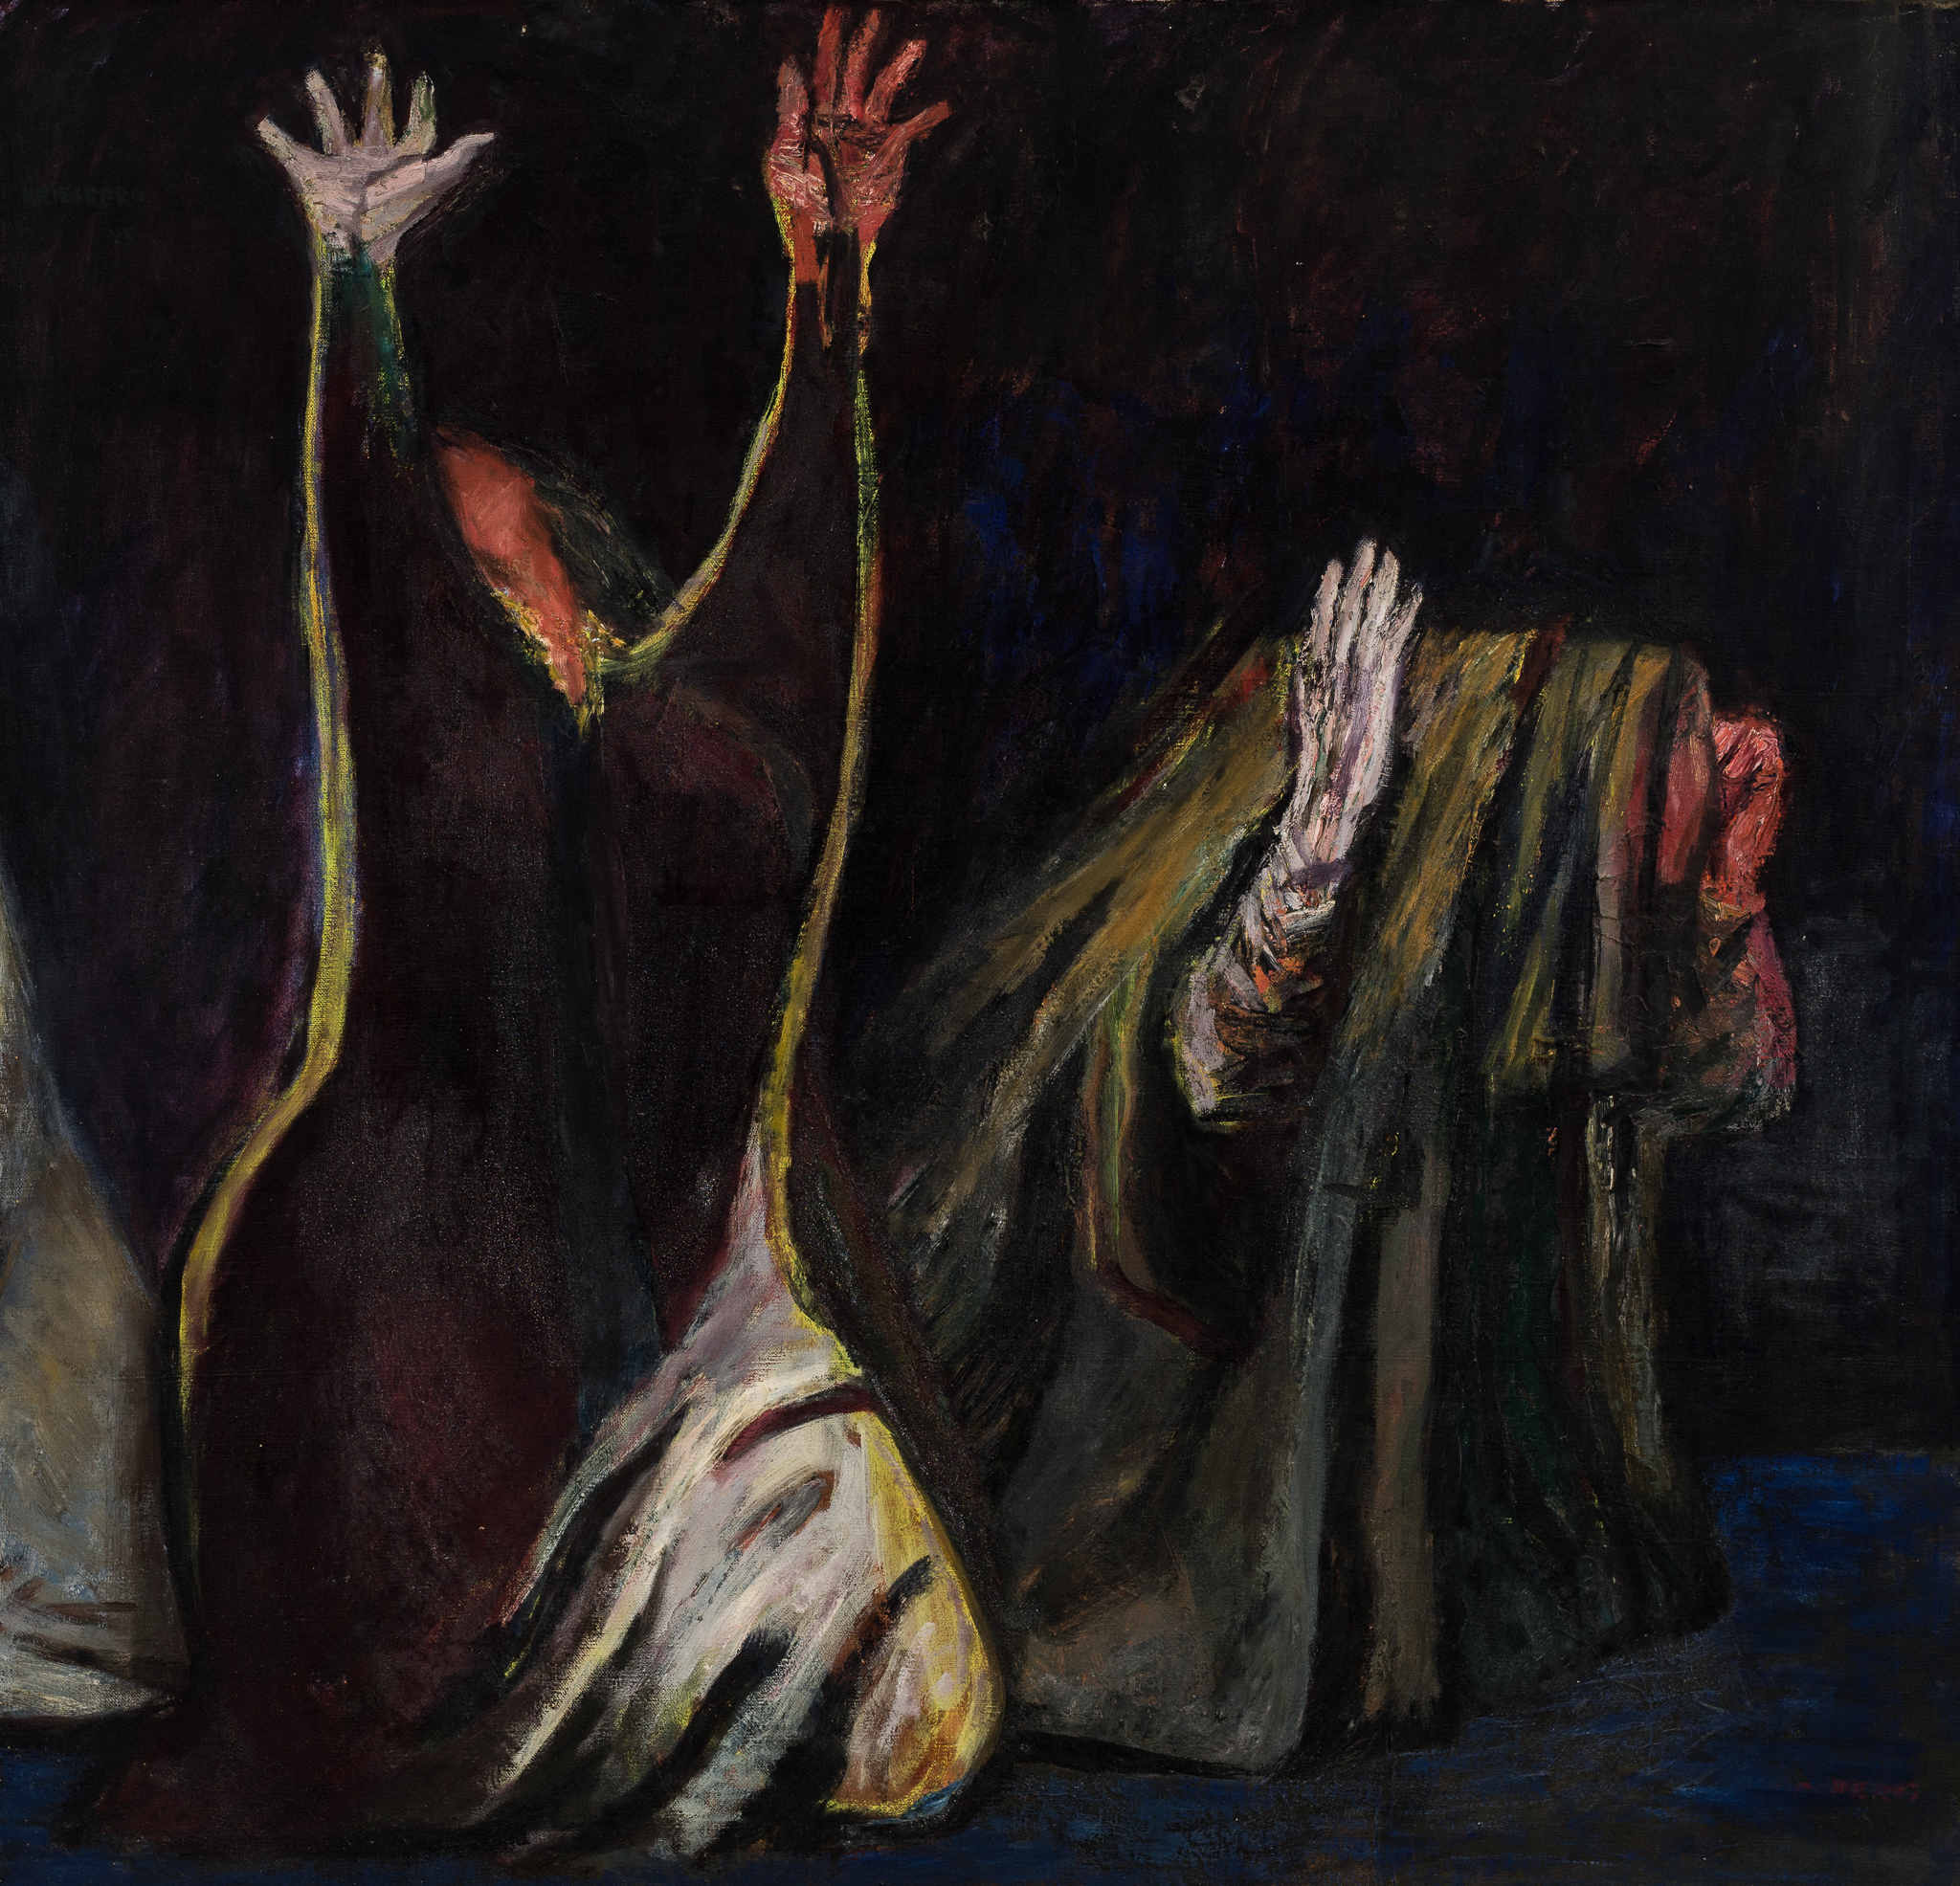 Weeping Women , 1945, oil on canvas, 36 x 38 1/4 in. (91.4 x 97.2 cm)